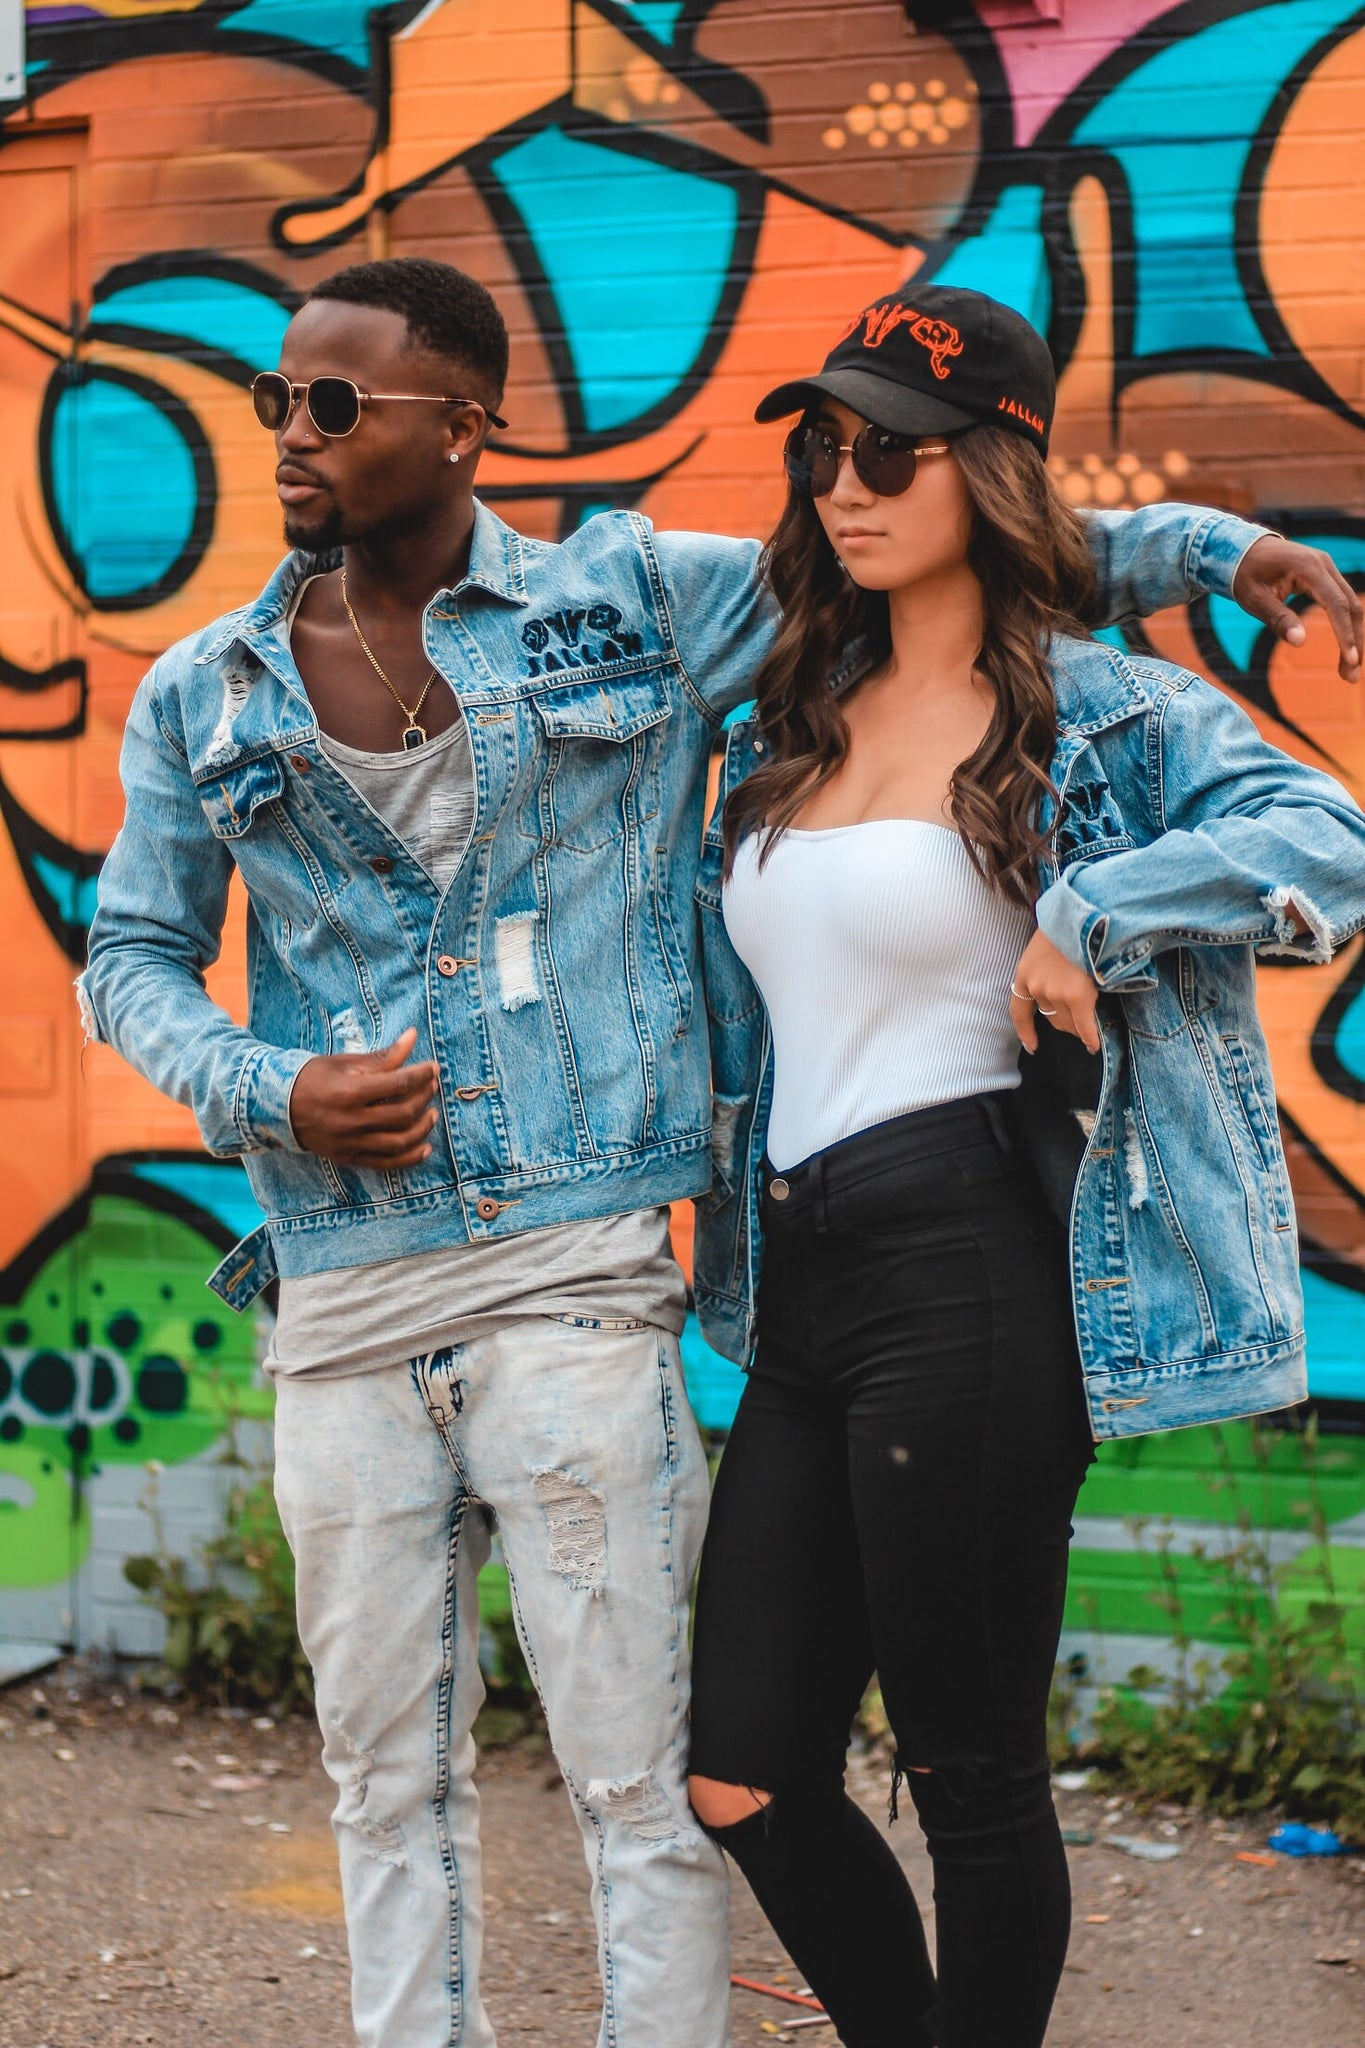 DISTRESSED DENIM JACKETS